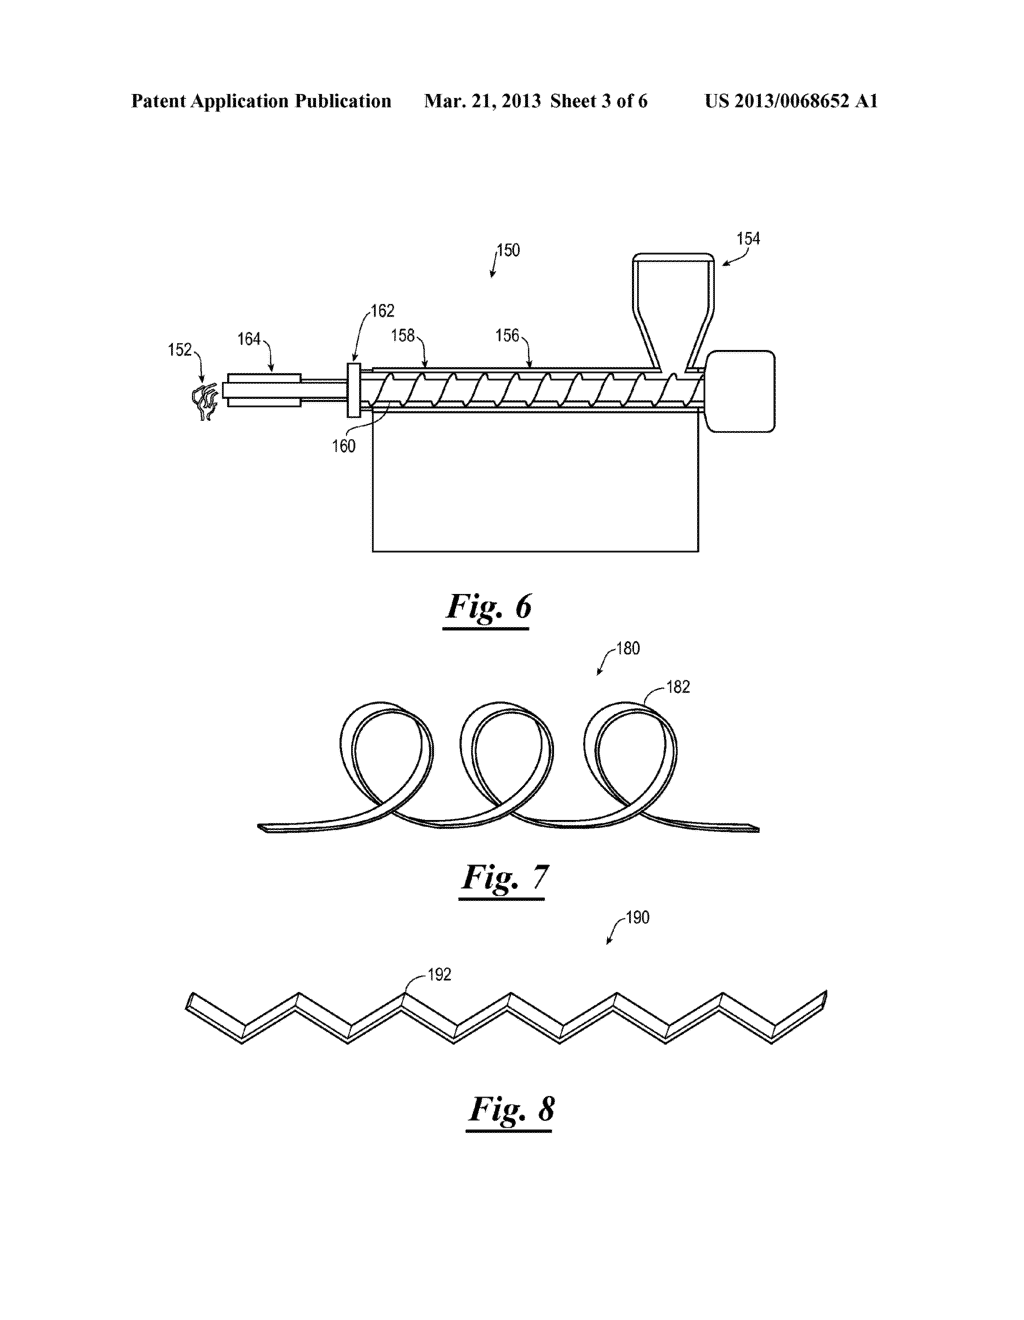 DECORATIVE GRASS AND PACKAGING MATERIAL FORMED OF RENEWABLE OR     BIODEGRADABLE POLYMER MATERIALS AND METHODS FOR PRODUCING SAME - diagram, schematic, and image 04